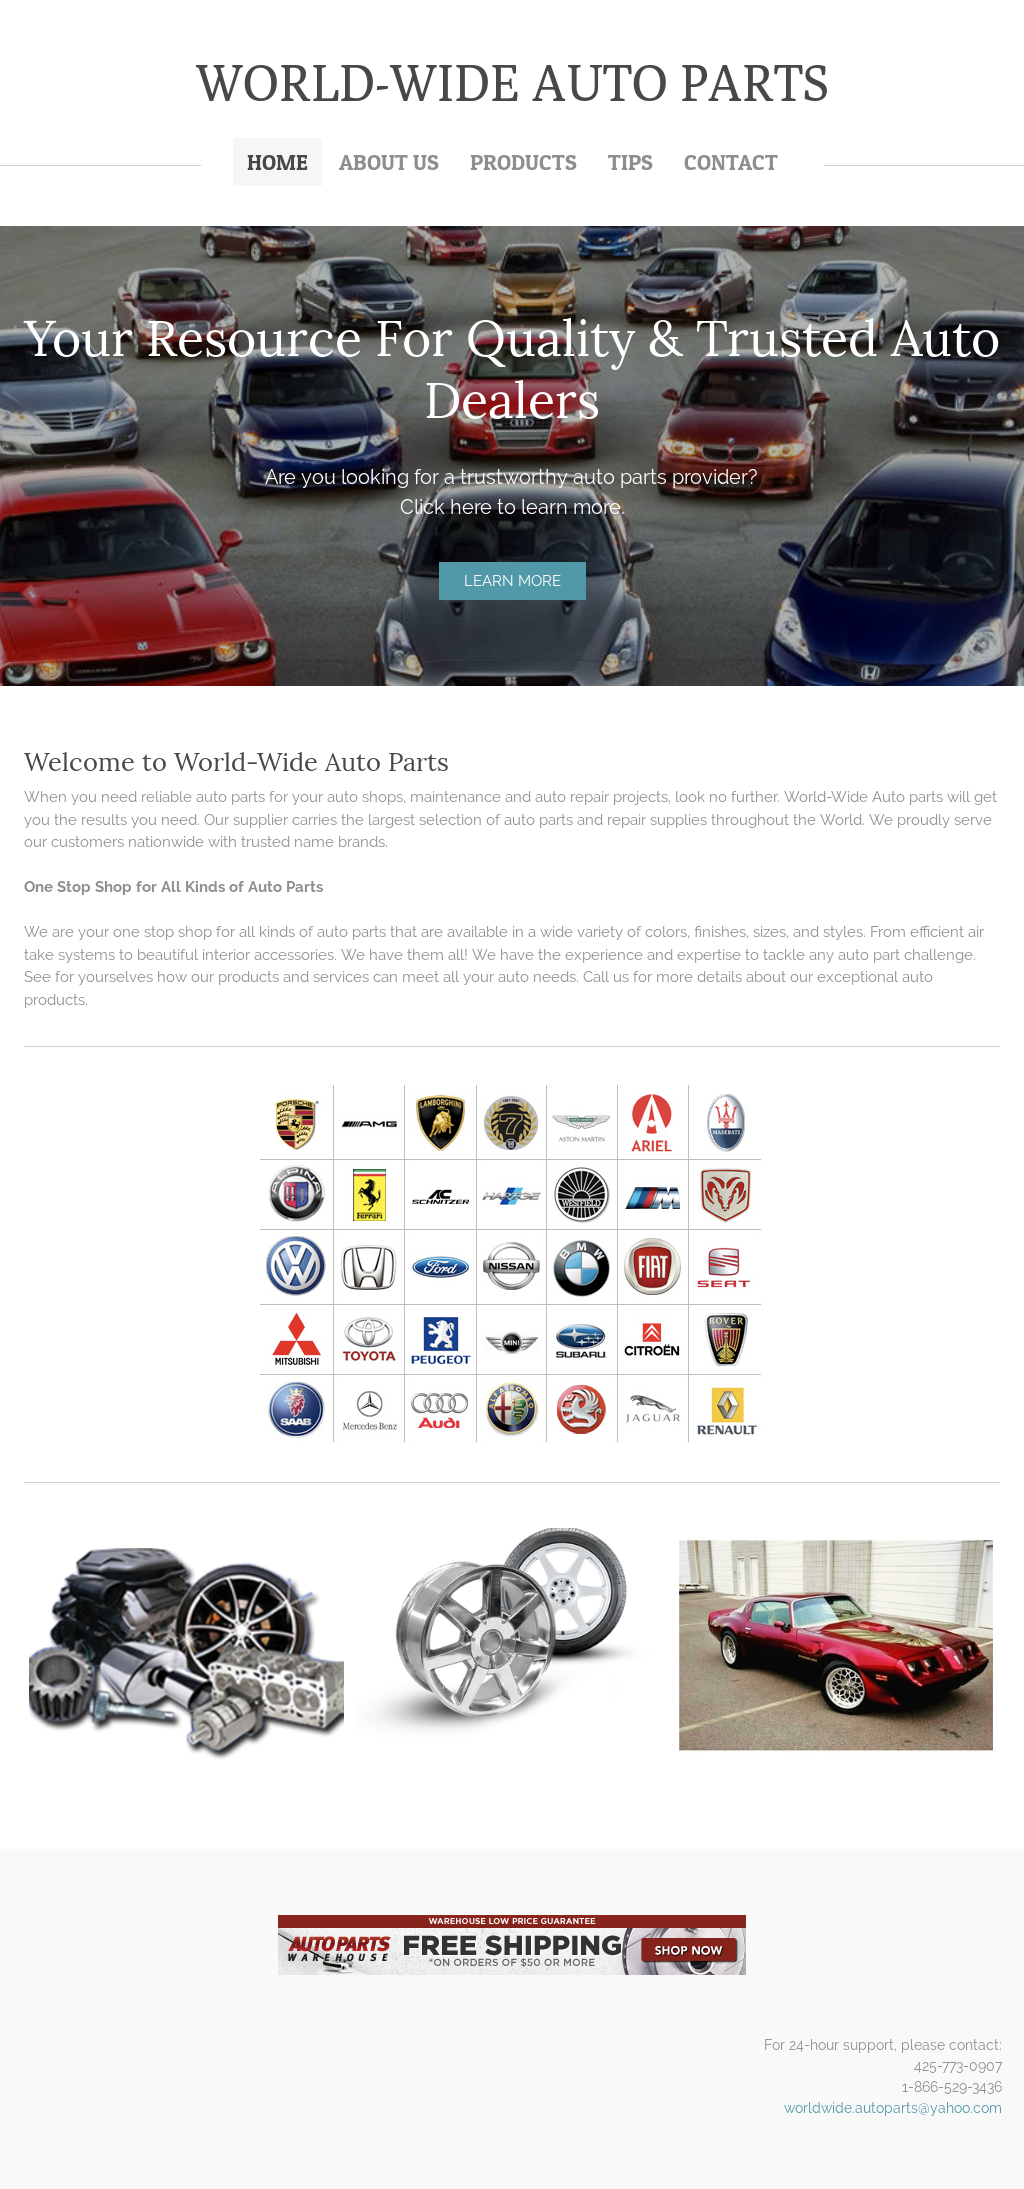 World-wide Auto Parts Competitors, Revenue and Employees - Owler ...